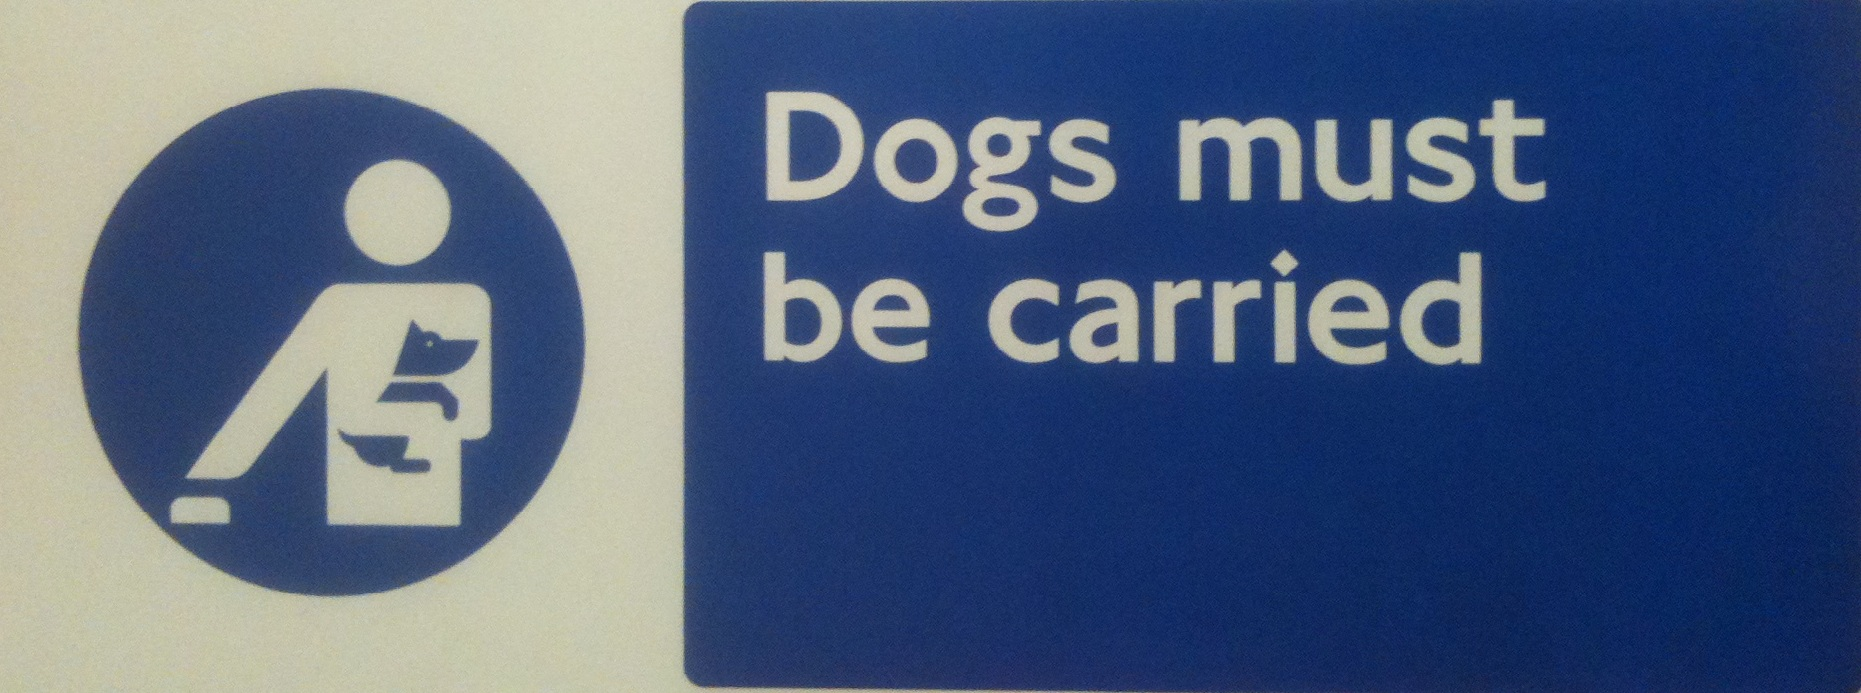 dogs-must-be-carried.jpg